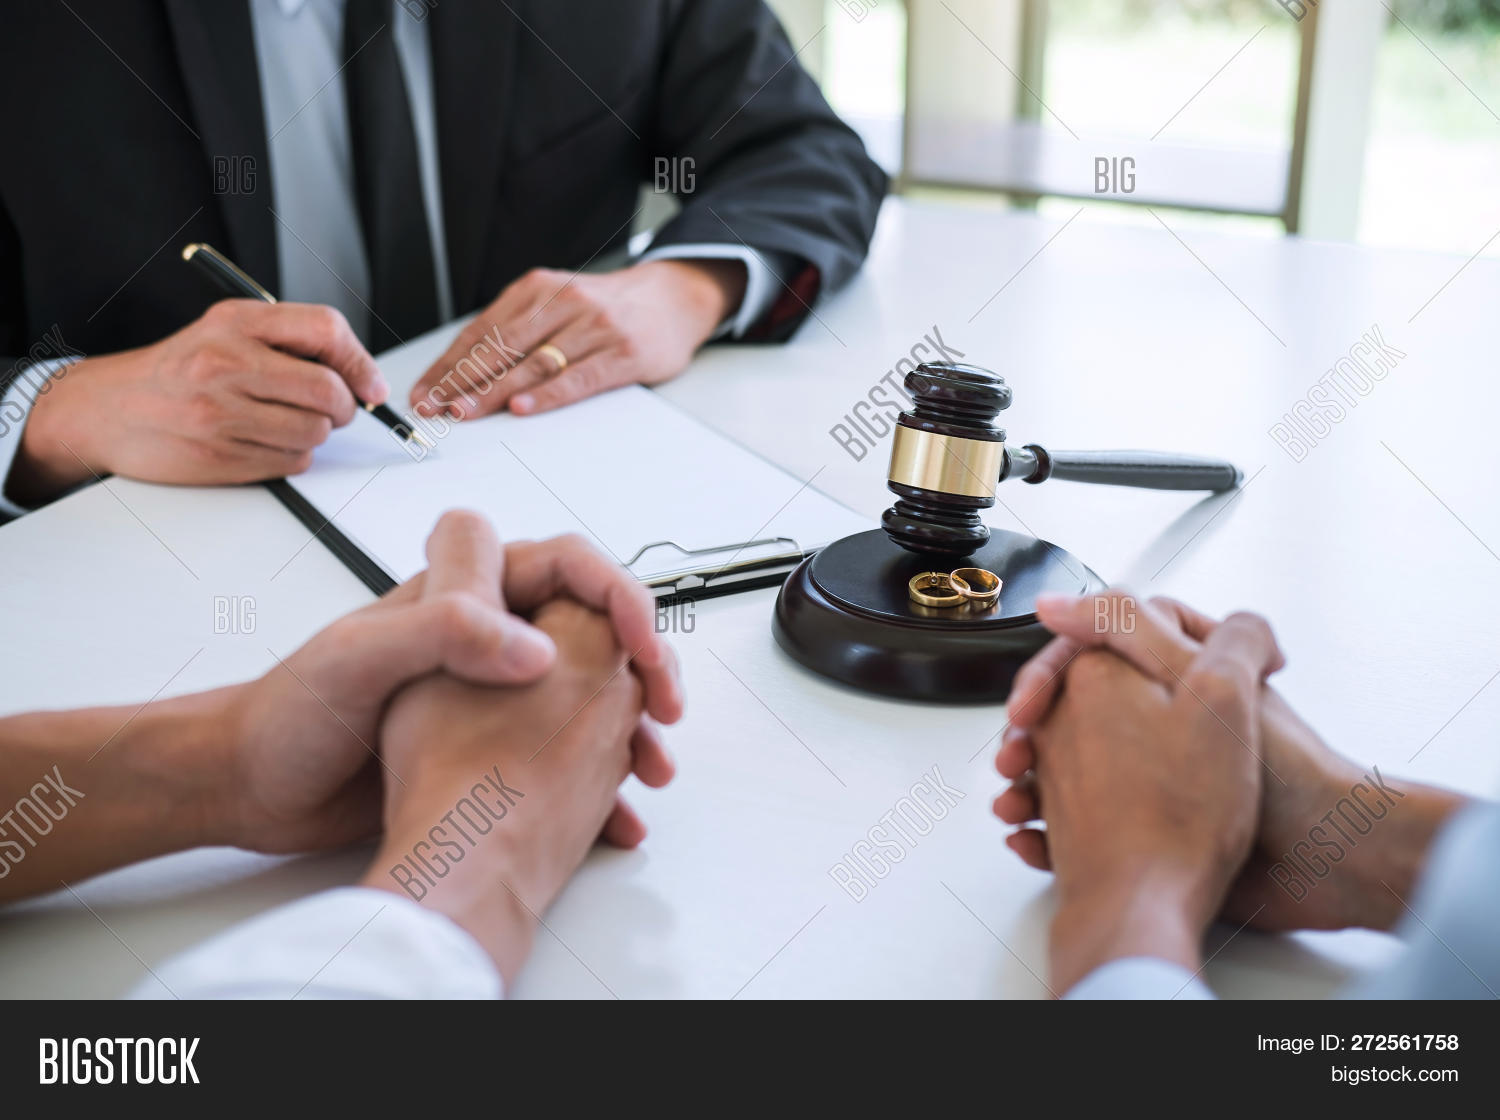 agreement,attorney,authority,conflict,controversy,couple,court,courtroom,decision,decree,despair,disagreement,disappointed,divorce,divorced,divorcing,end,equality,family,forsake,gavel,husband,infidelity,judge,judgement,justice,law,lawsuit,lawyer,legal,love,marriage,notary,problem,reflection,relationship,return,ring,separate,separation,signing,spouse,symbol,termination,unhappy,verdict,warrant,wedding,wife